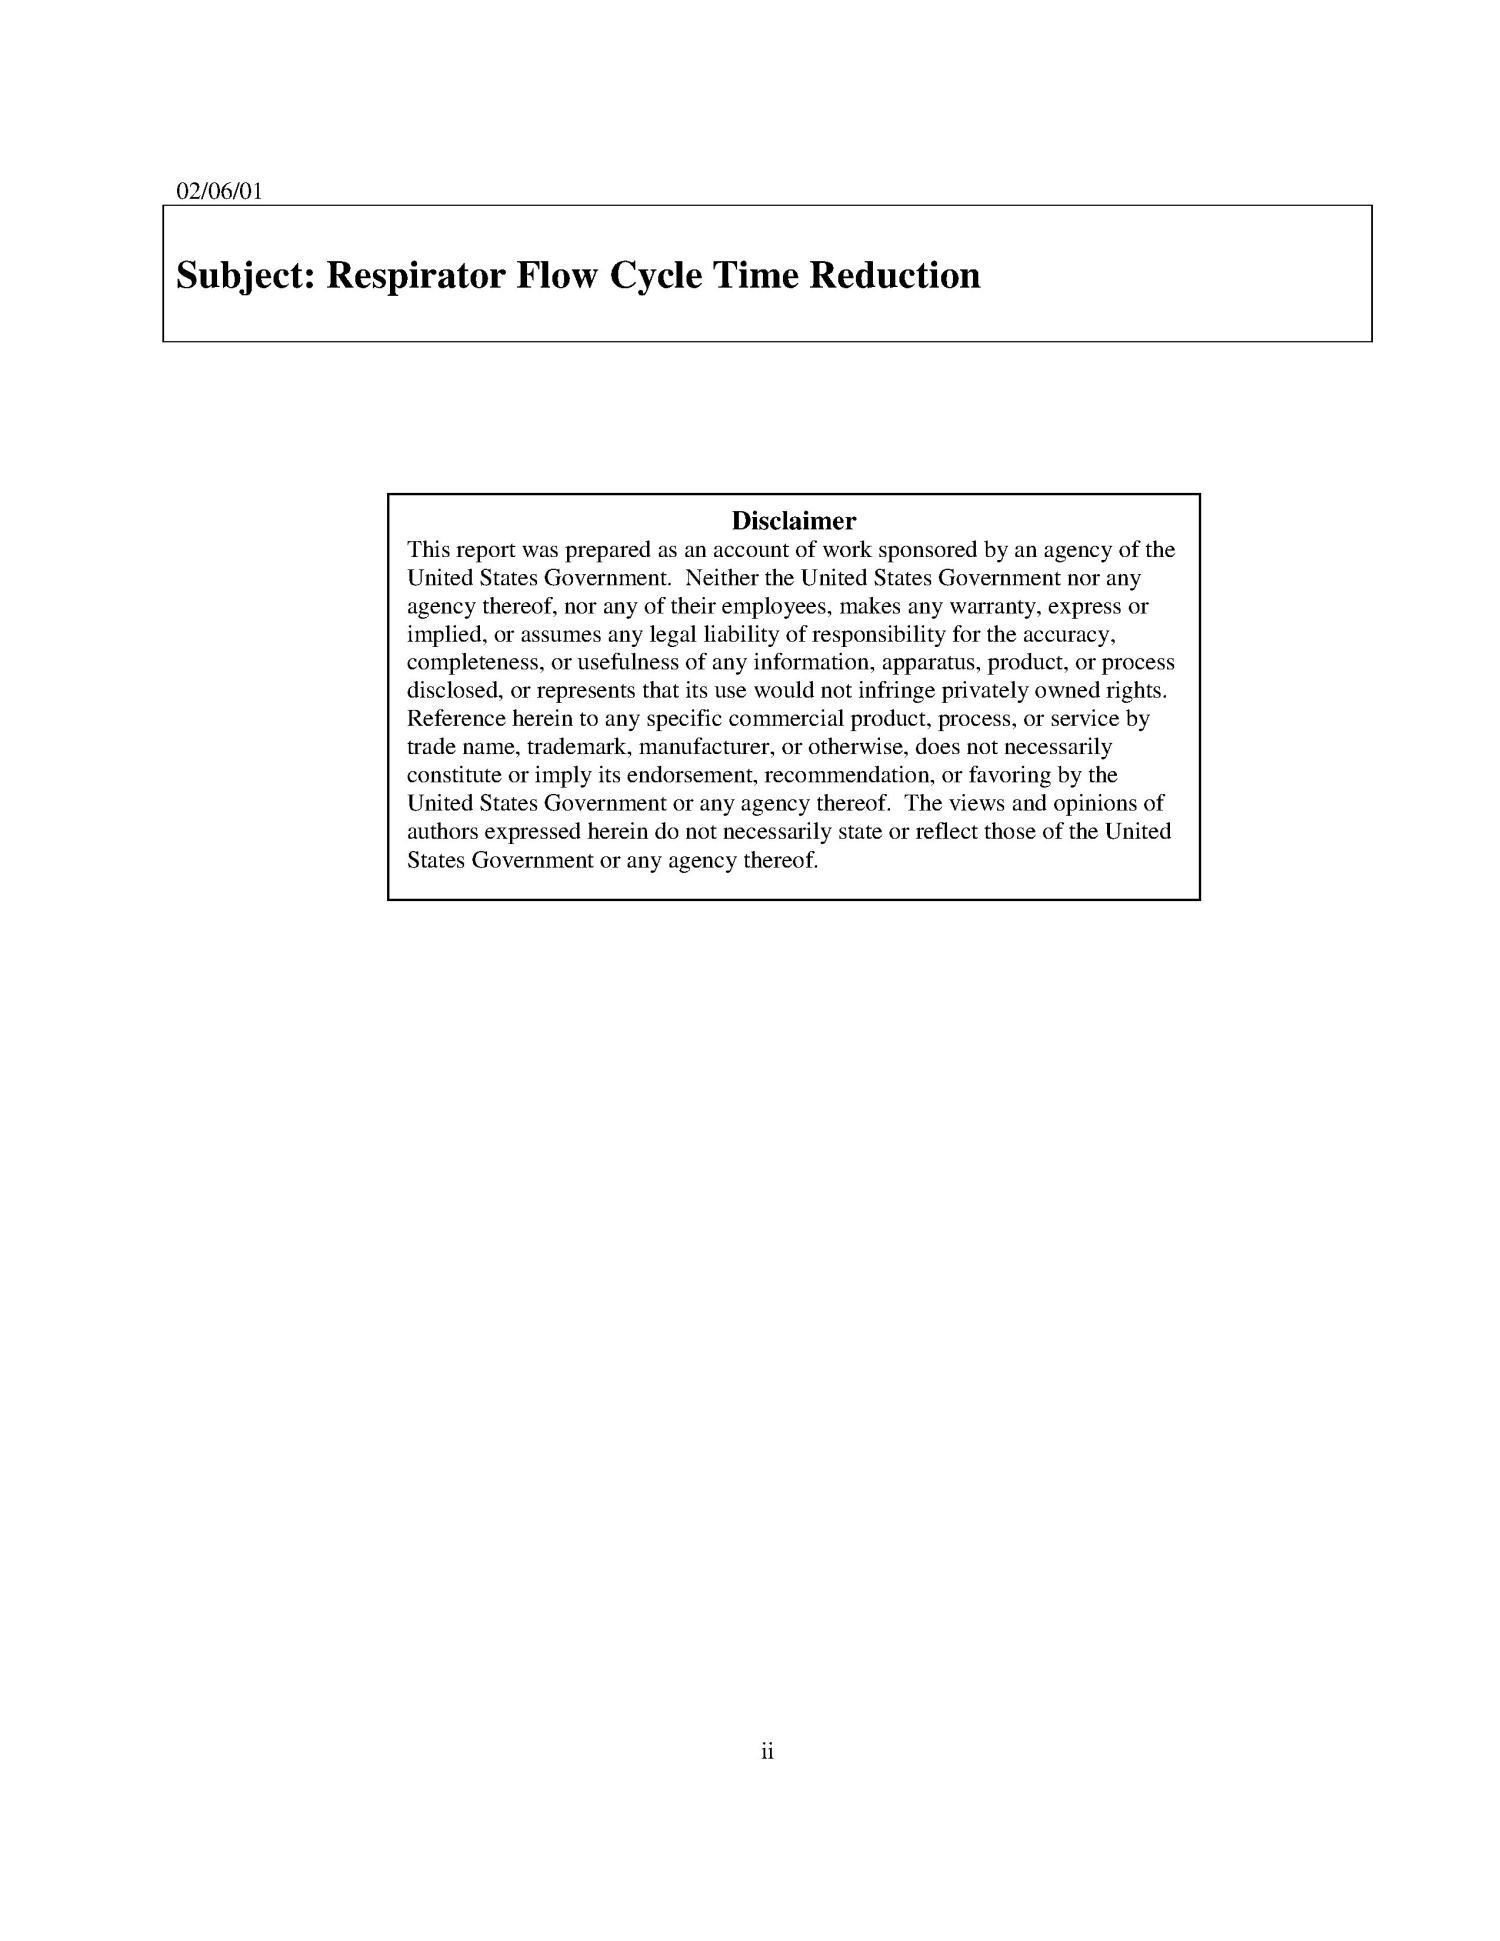 Y-12 Respirator Flow Cycle Time Reduction Project                                                                                                      [Sequence #]: 2 of 26